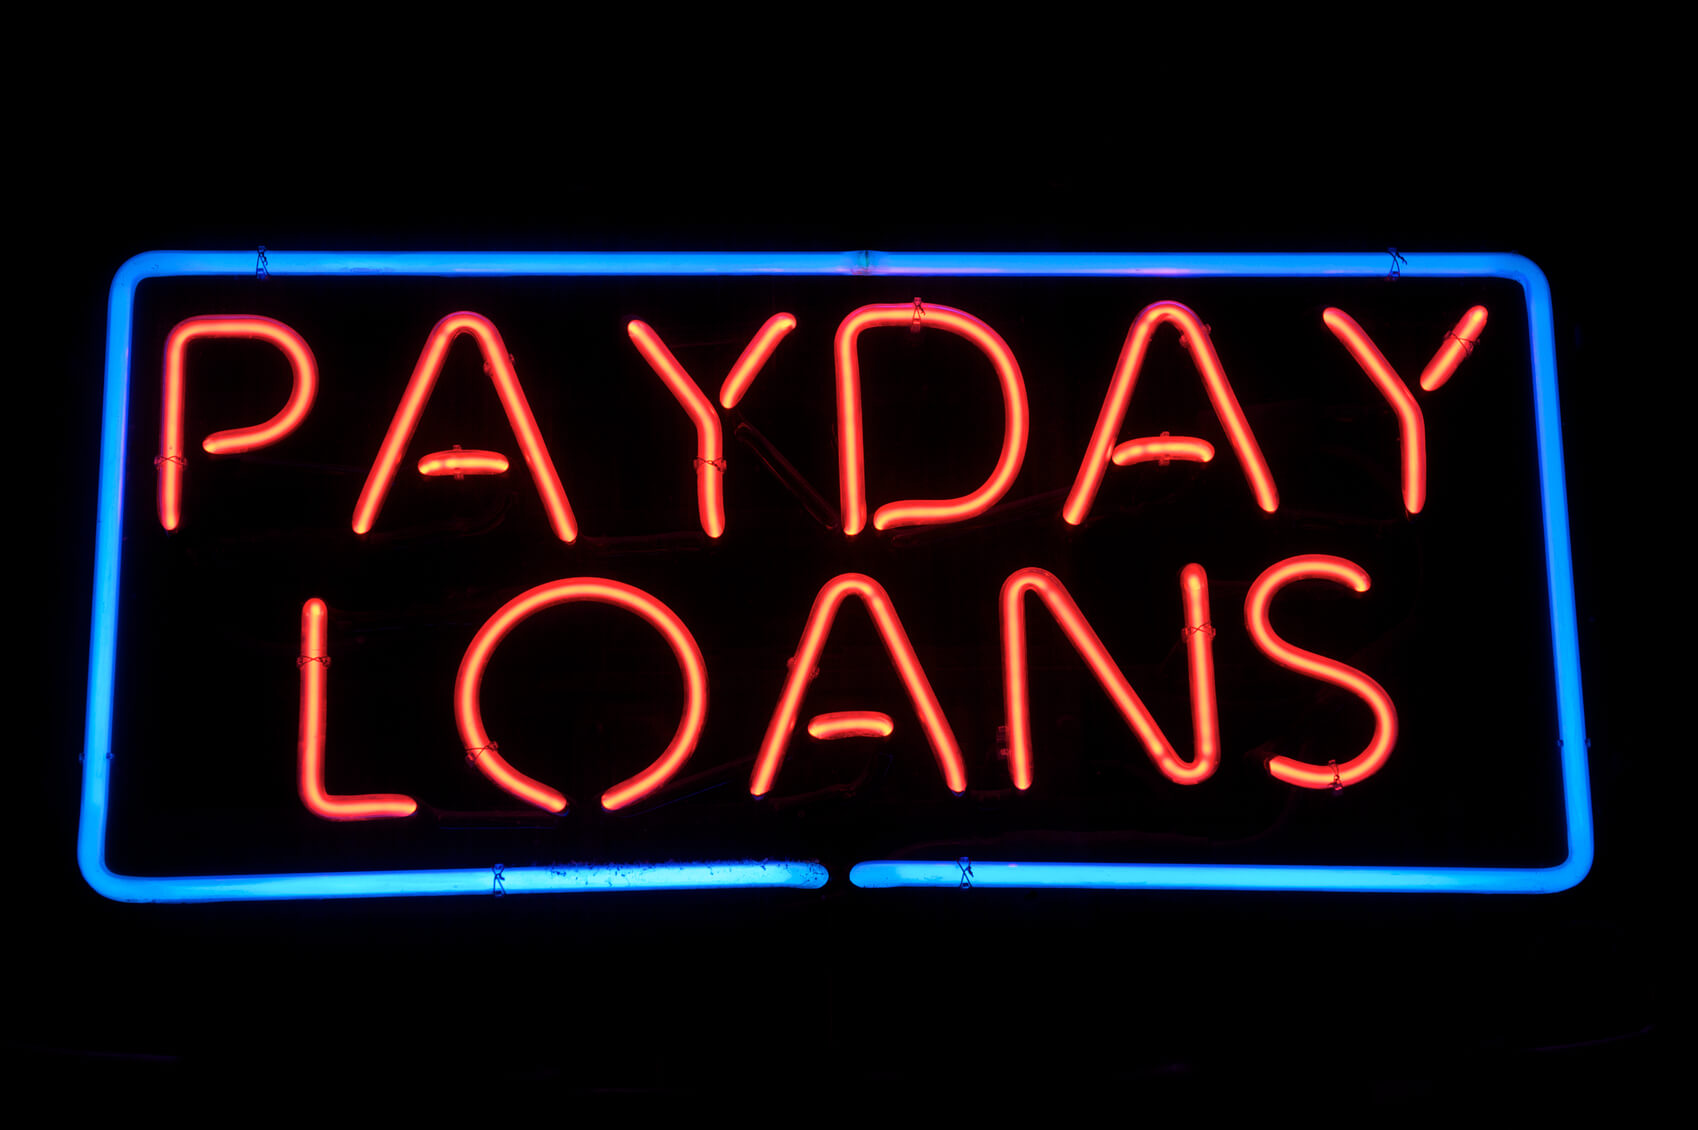 Payday loans (the good and bad) and alternatives